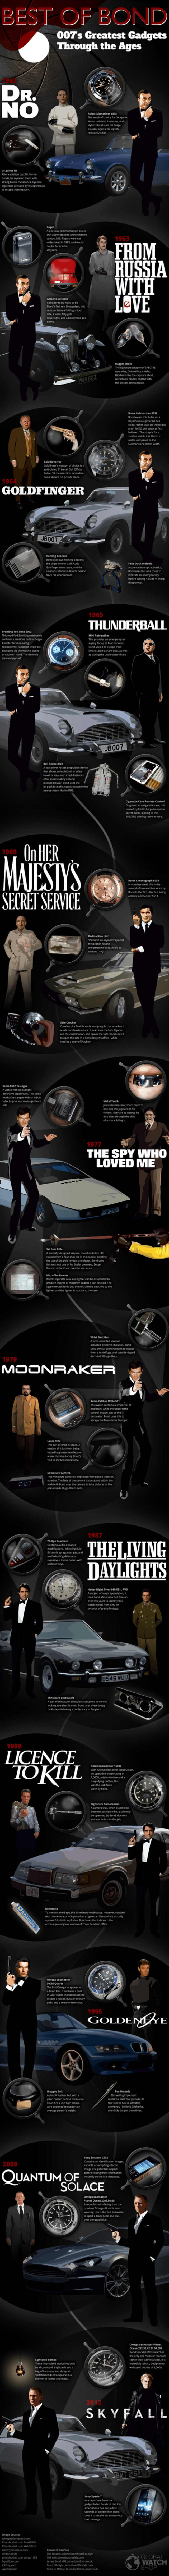 Gadgets of James Bond- infographic